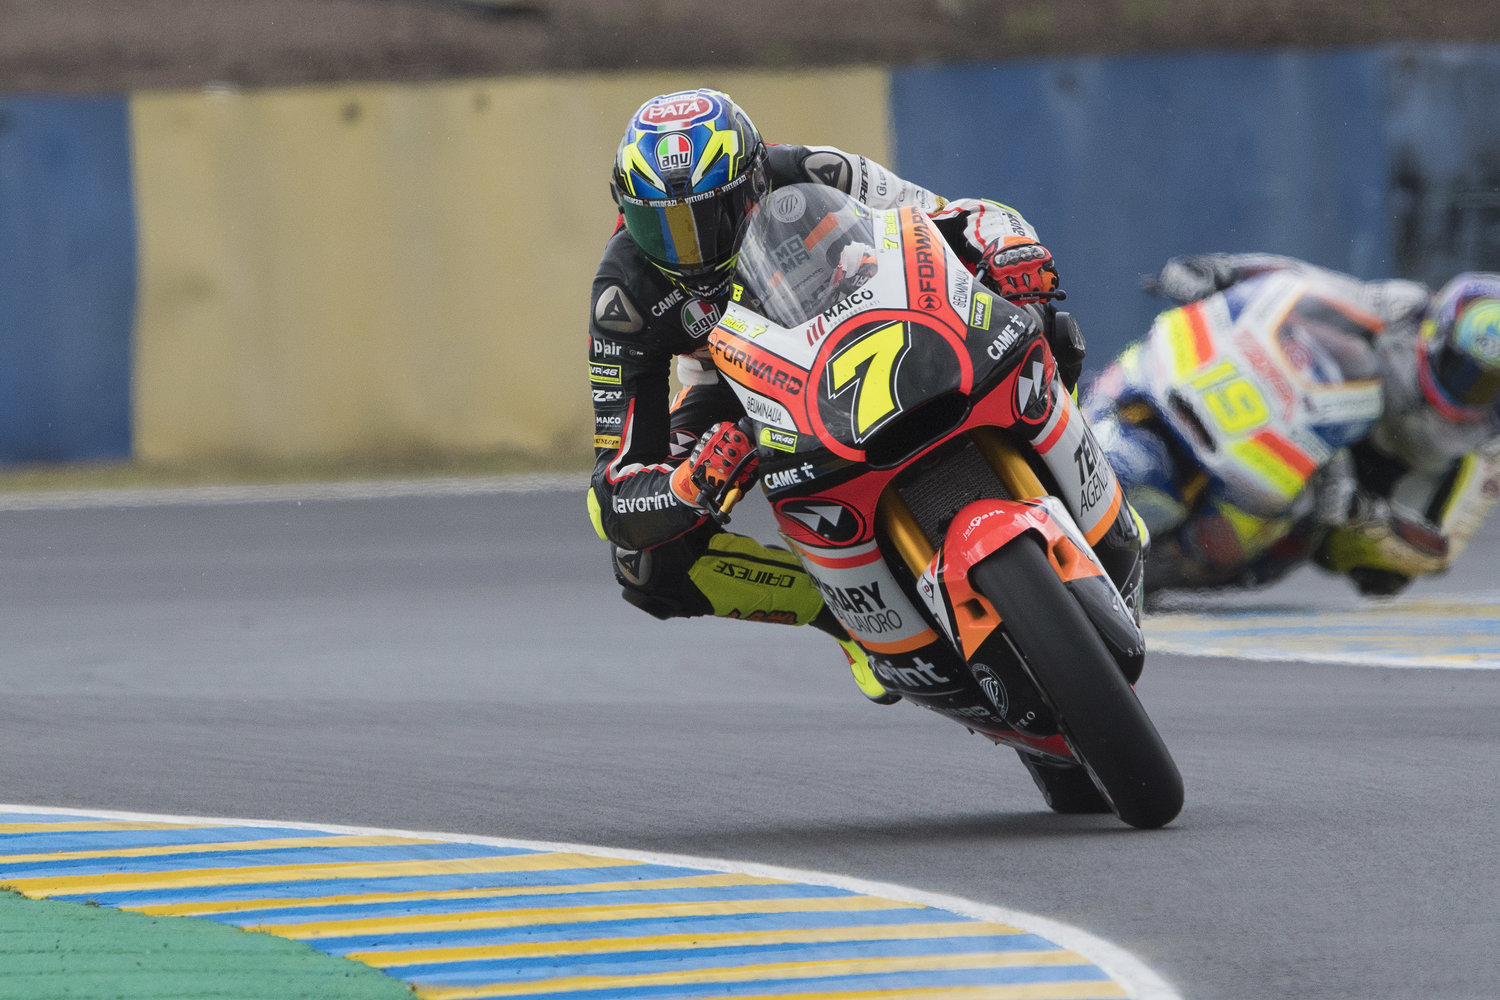 Forward Racing to leave France without deserved rewards